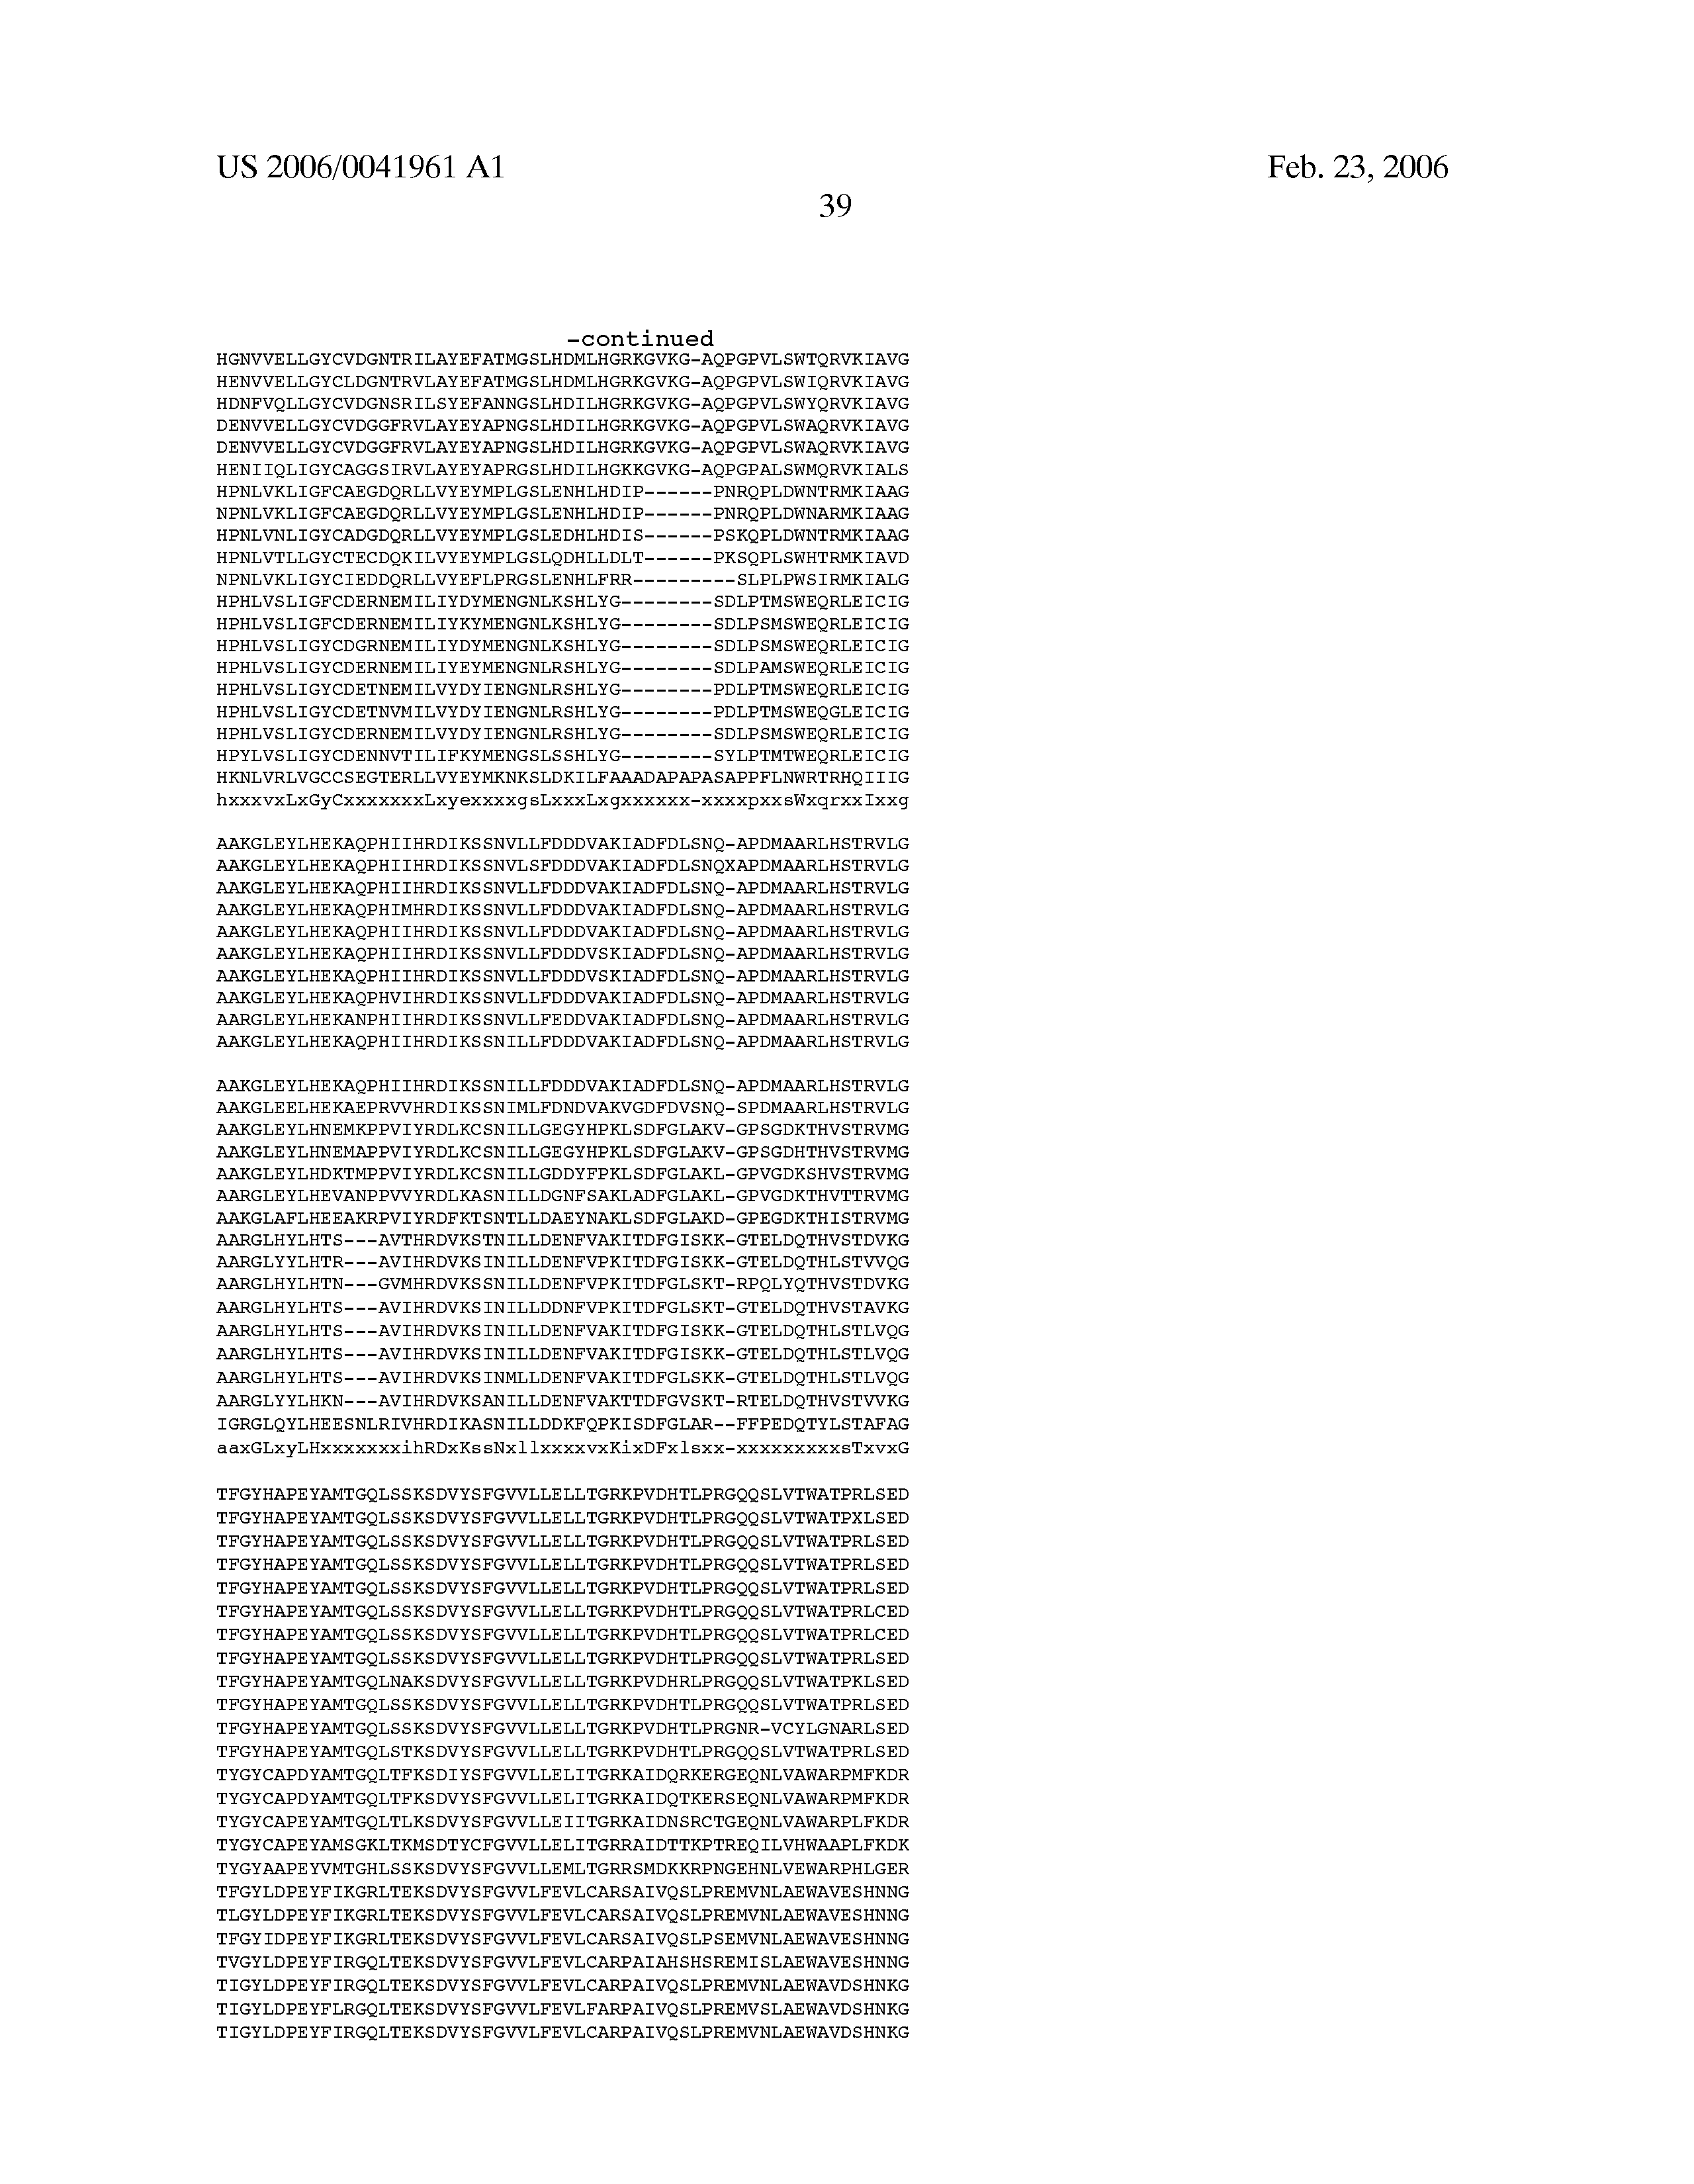 Click to reveal contact information phone 03 9864 1111 fax 03 9864 - Patent Drawing